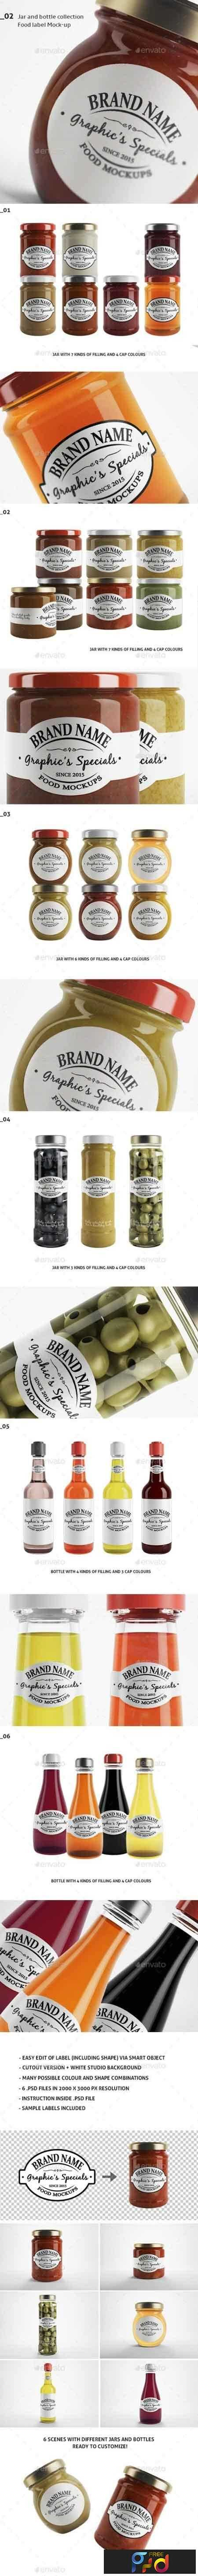 1807226 Jar Bottle Mockups 18837360 1